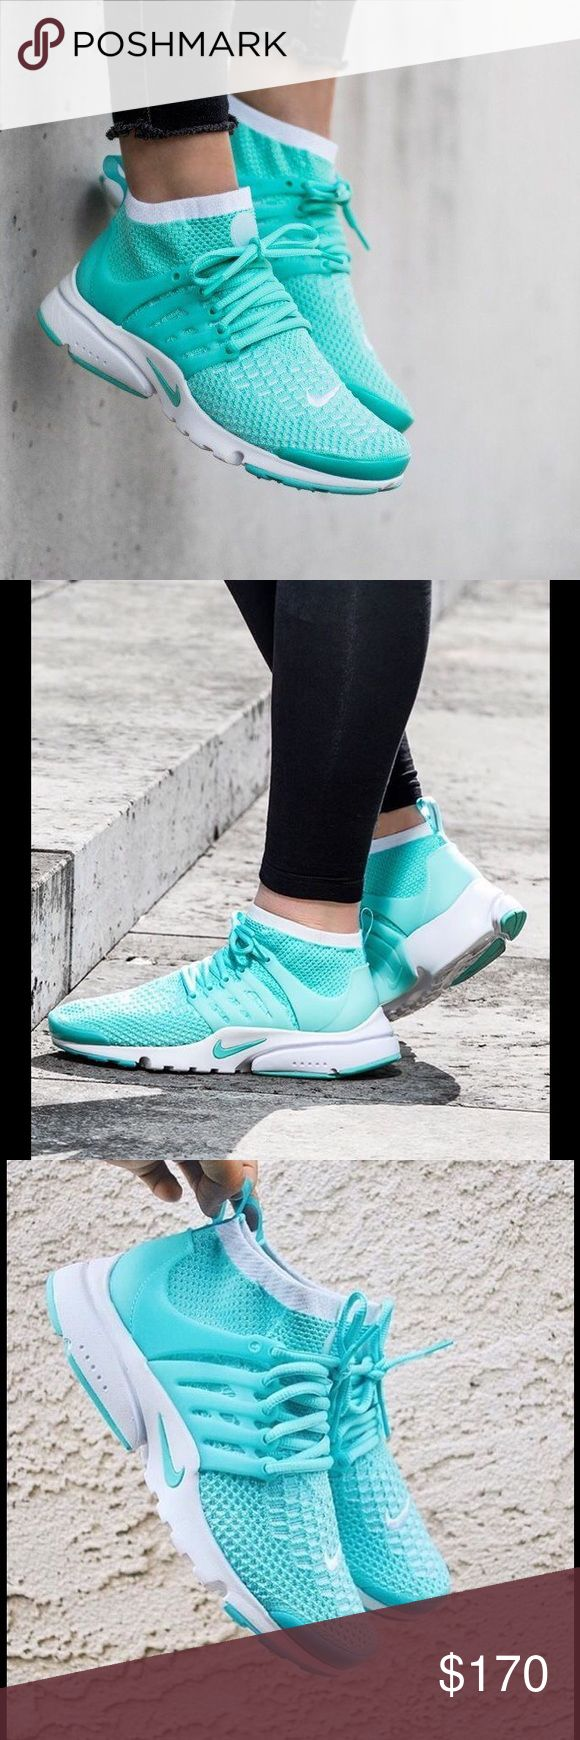 Home nike wmns air presto flyknit ultra midnight turquoise olive - Air Presto Flyknit Ultra Brand New Presto Flyknit Ultra Sneakers Never Worn Shoes Comes